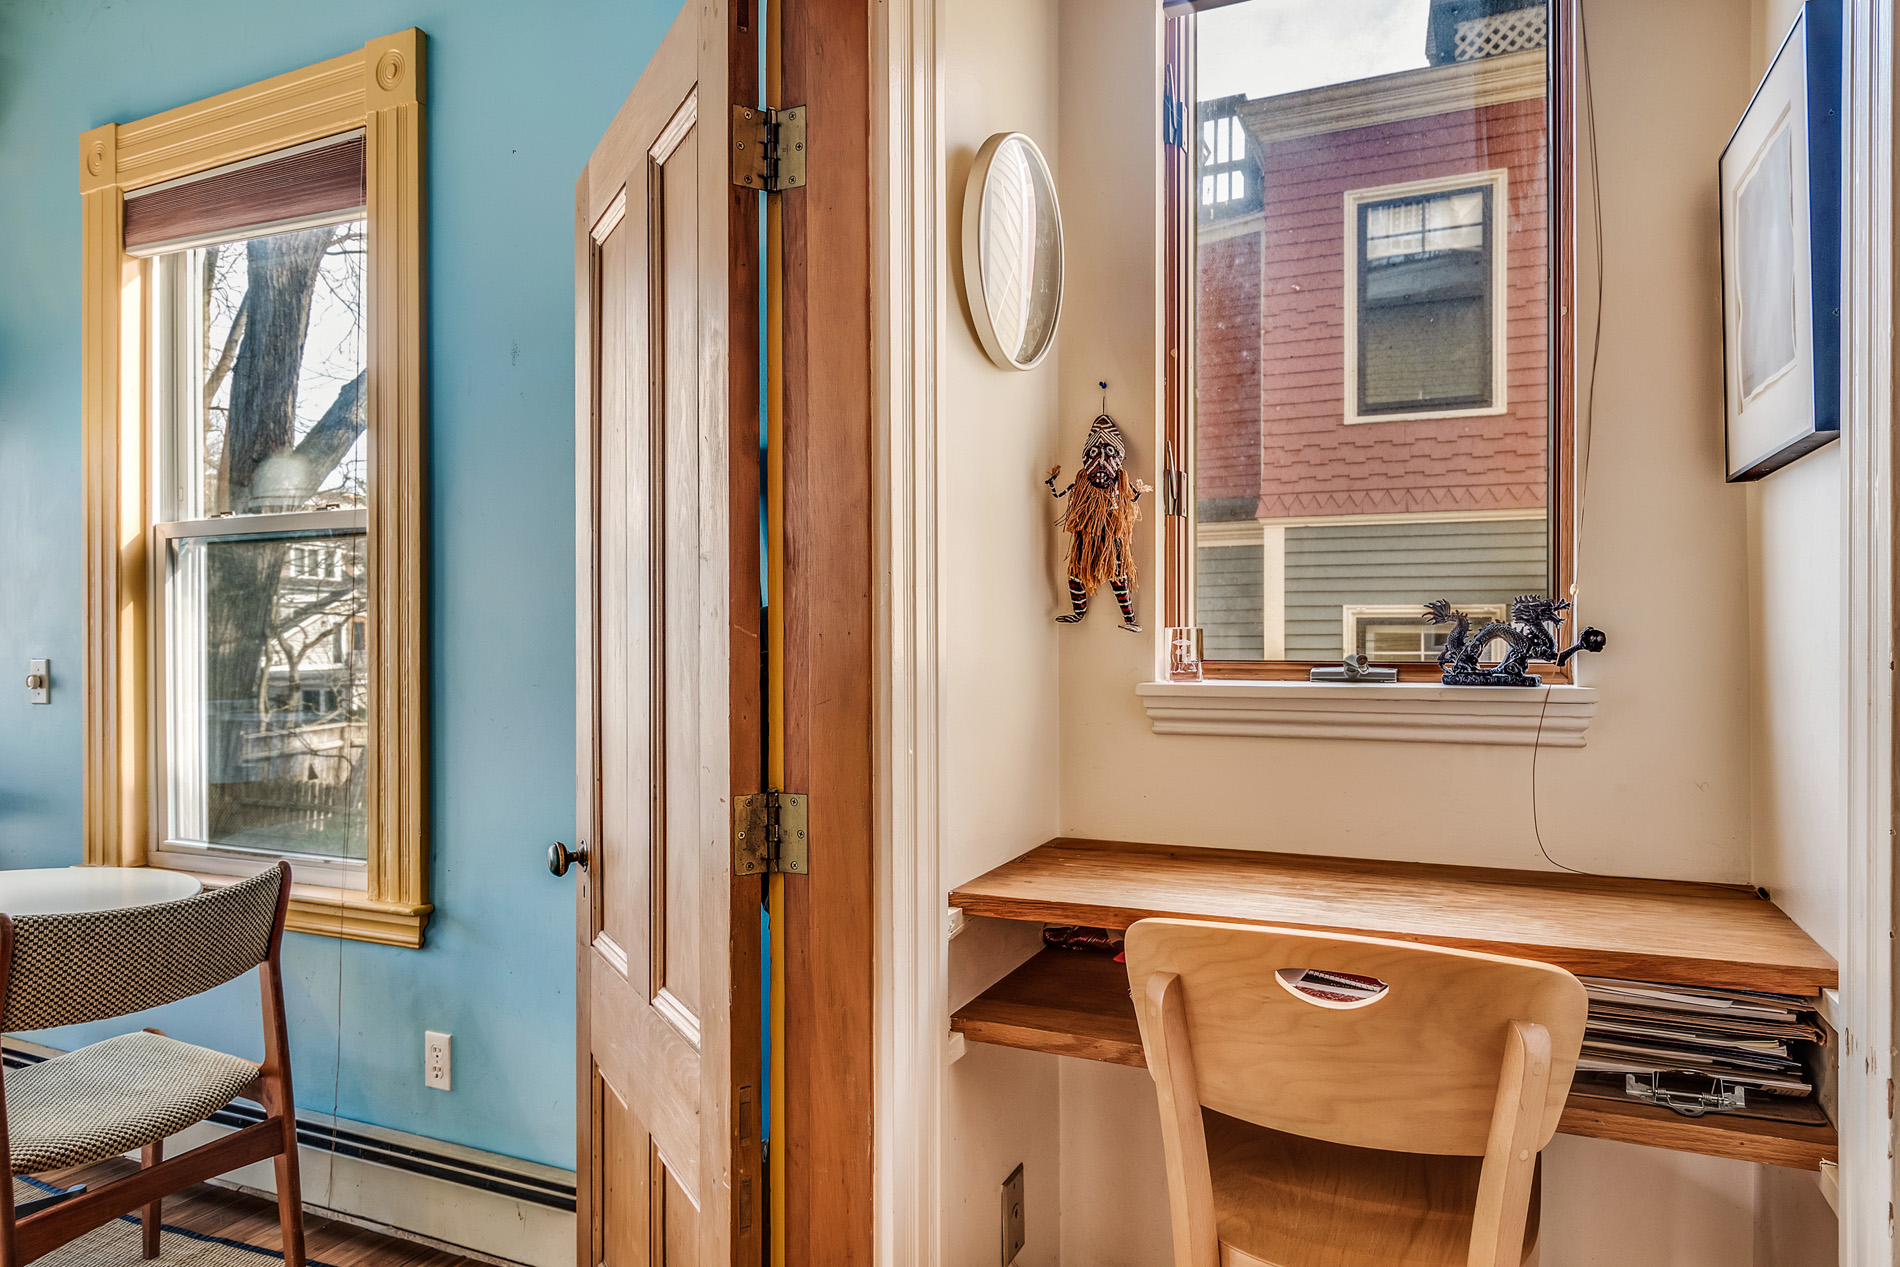 Additional photo for property listing at 21 Lancaster Street A, Cambridge 21 Lancaster St A Cambridge, Massachusetts 02140 United States